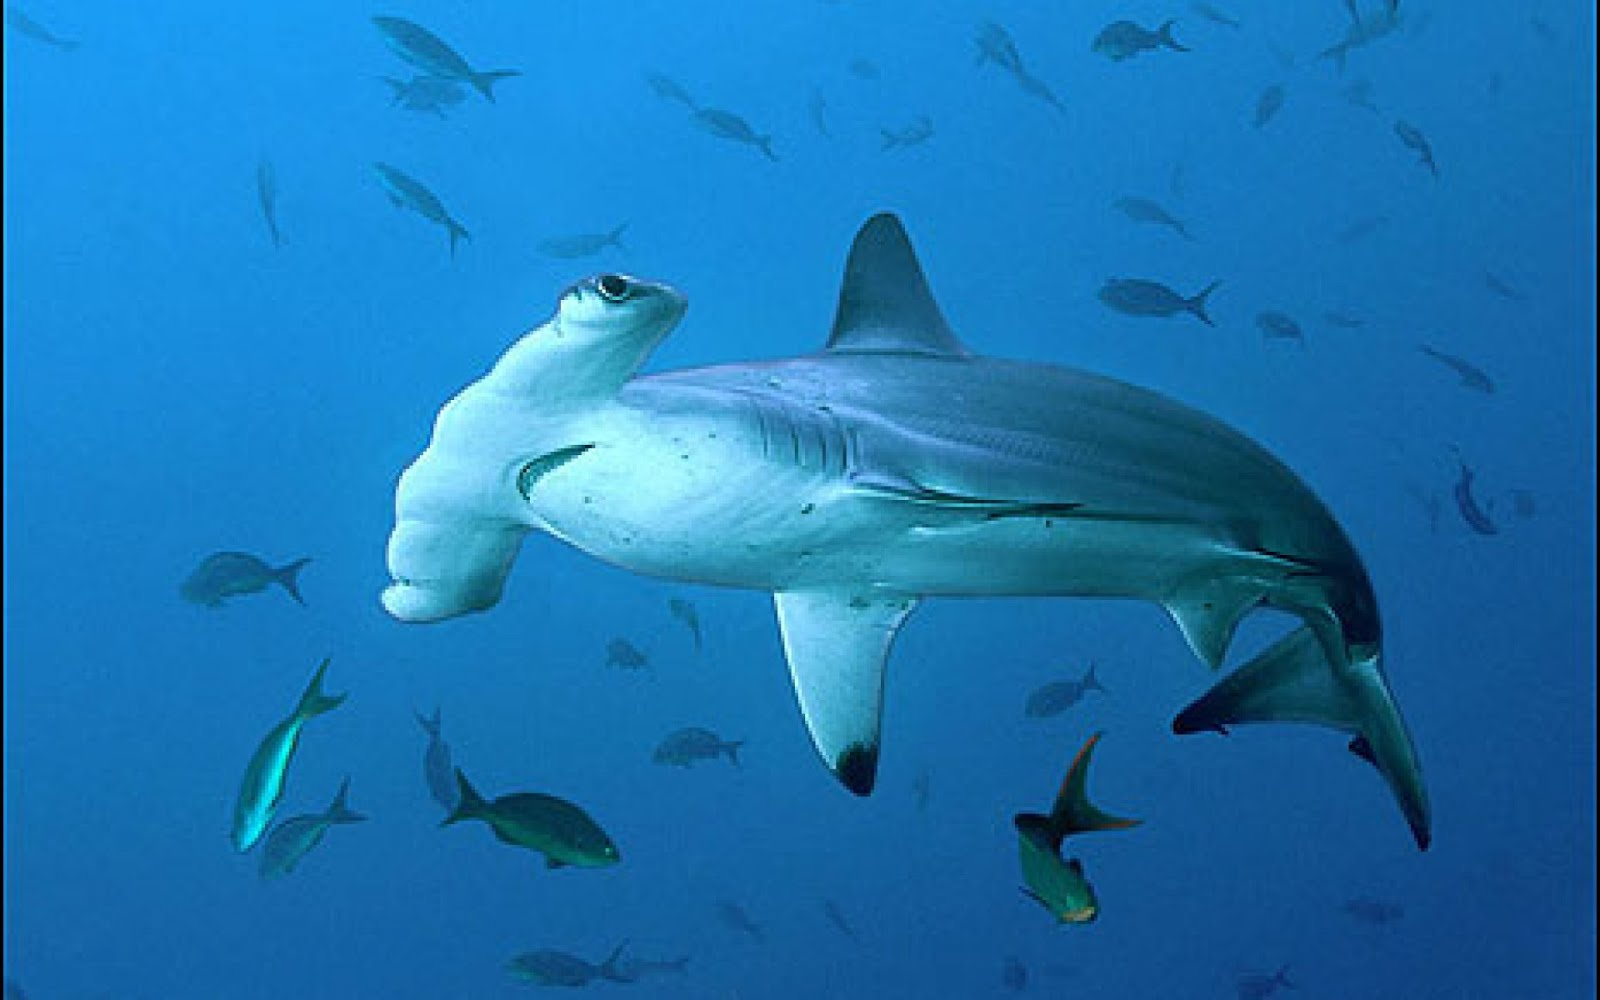 Top 27 Sea Animals Wallpapers In Hd: Underwater Sea Creatures And Other Animals Wallpapers